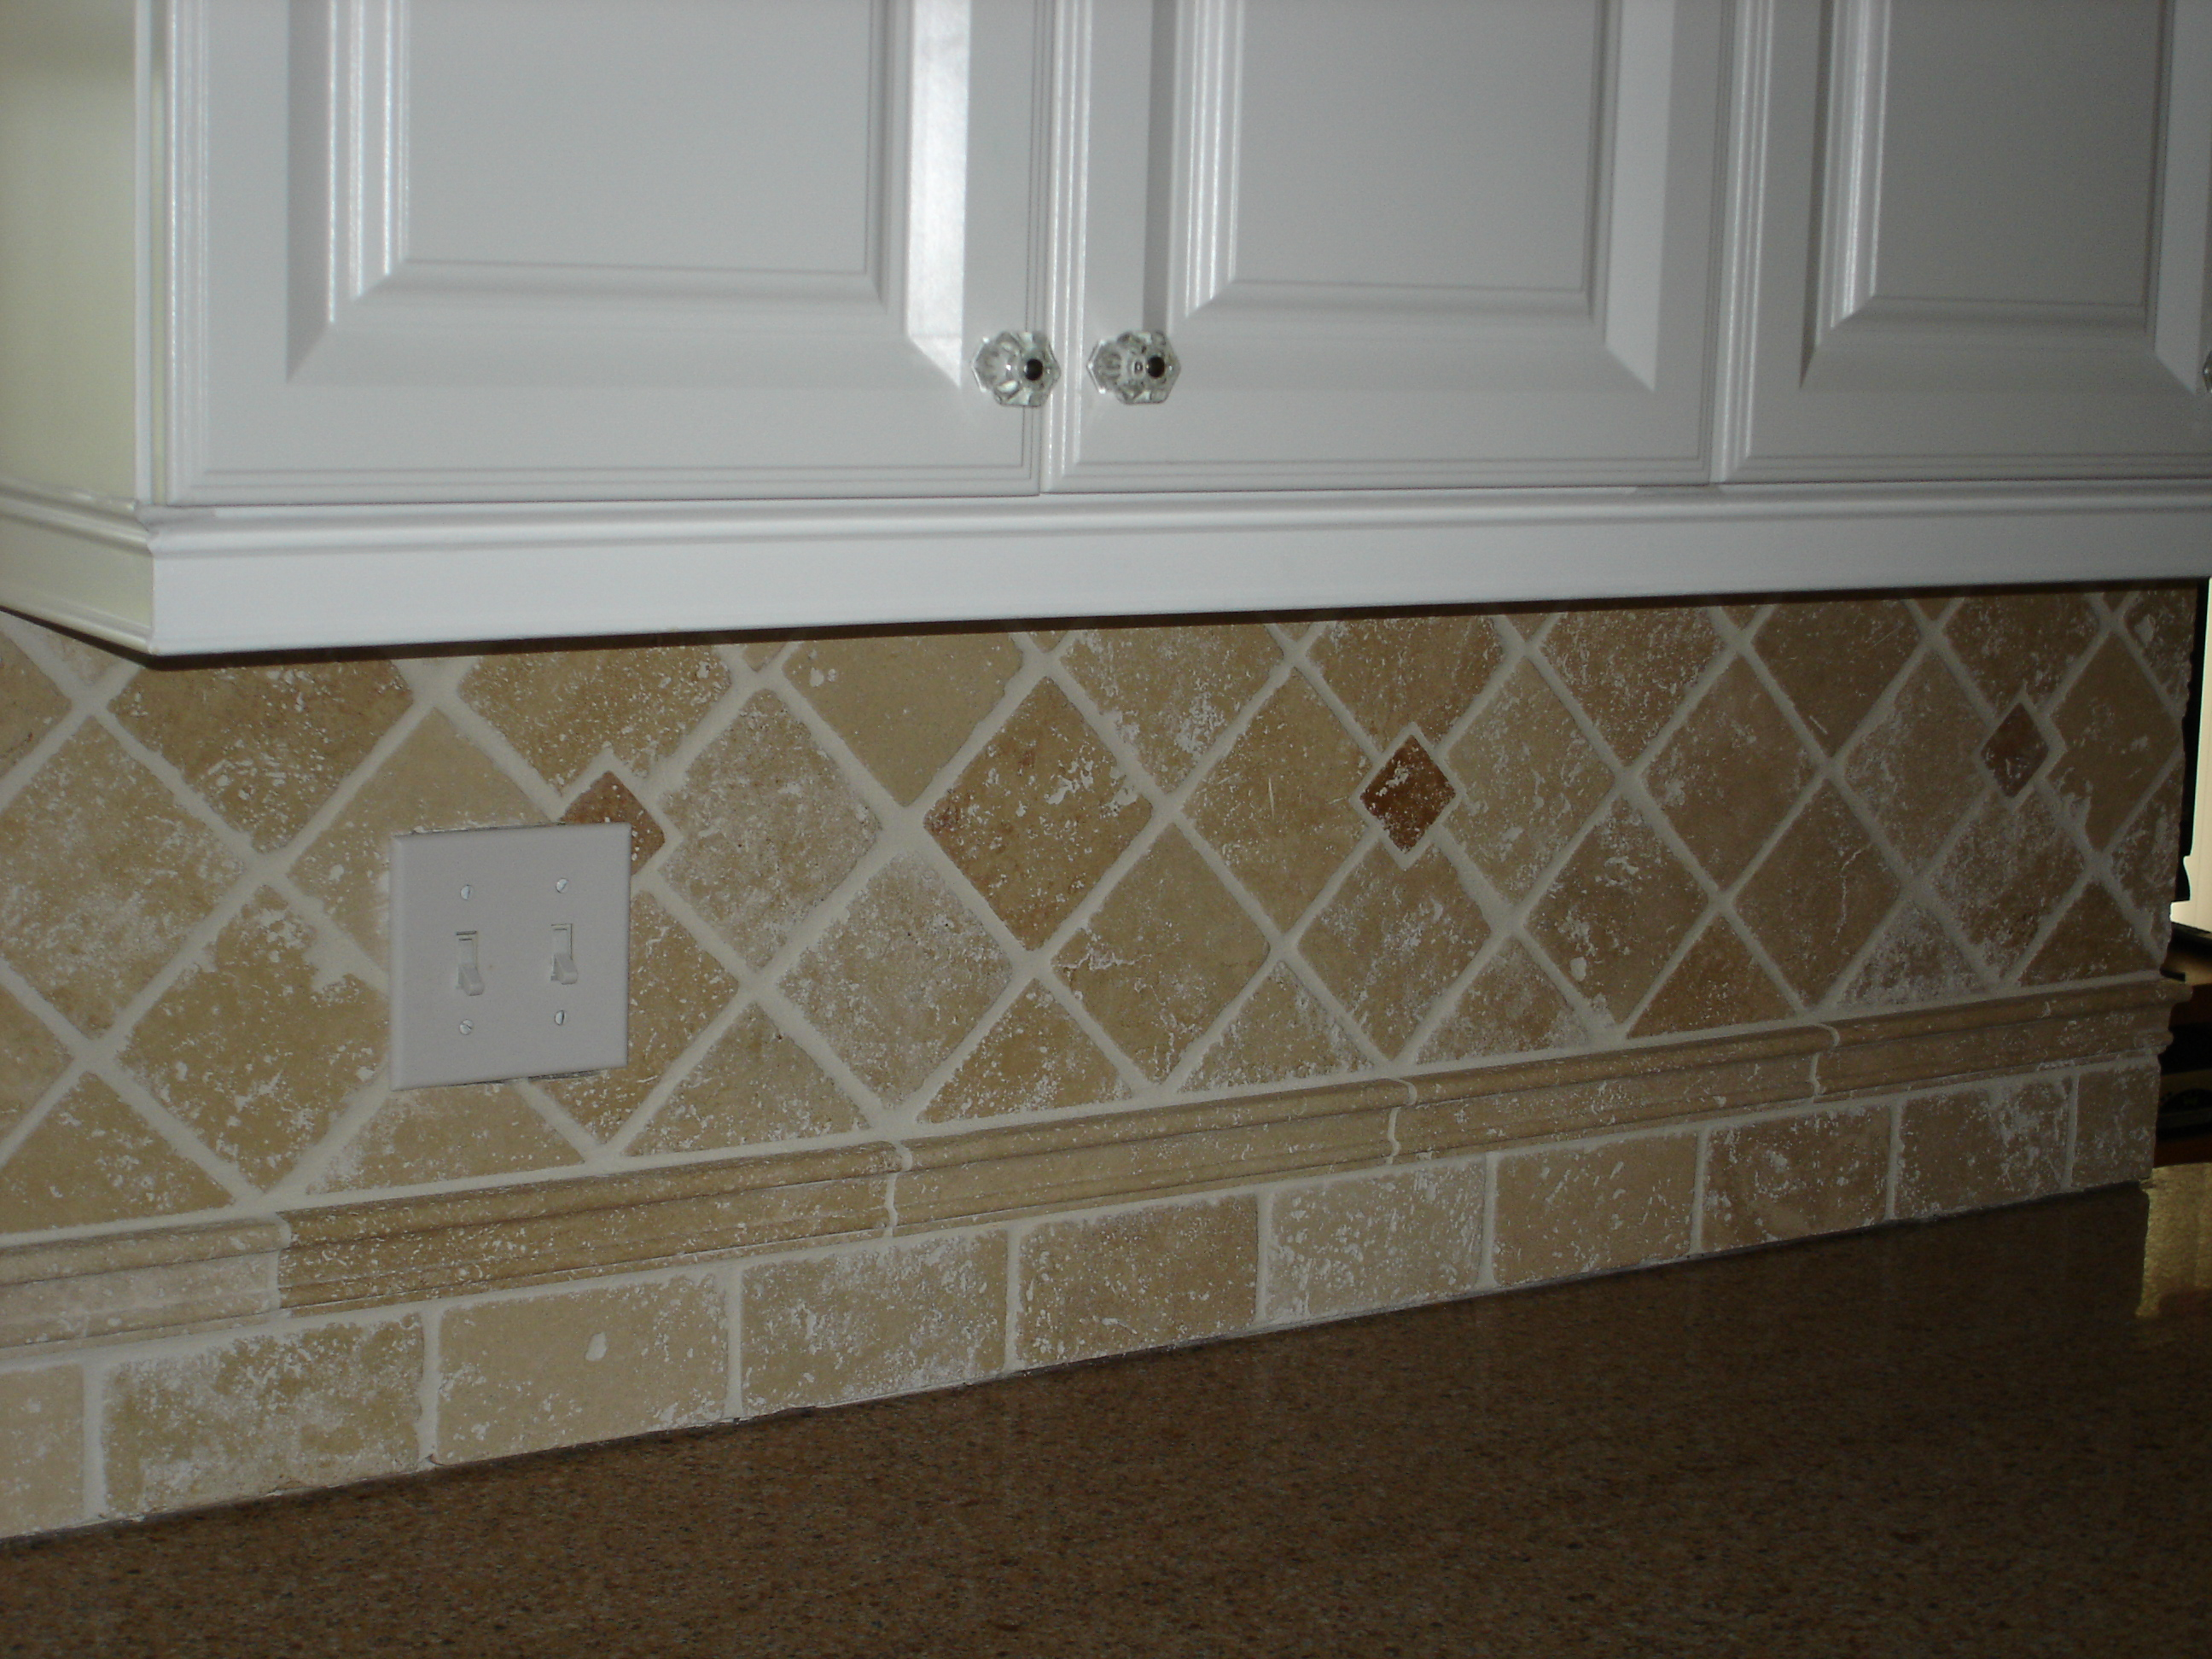 Incredible Kitchen Backsplash Tile Design Idea 2592 x 1944 · 2098 kB · jpeg